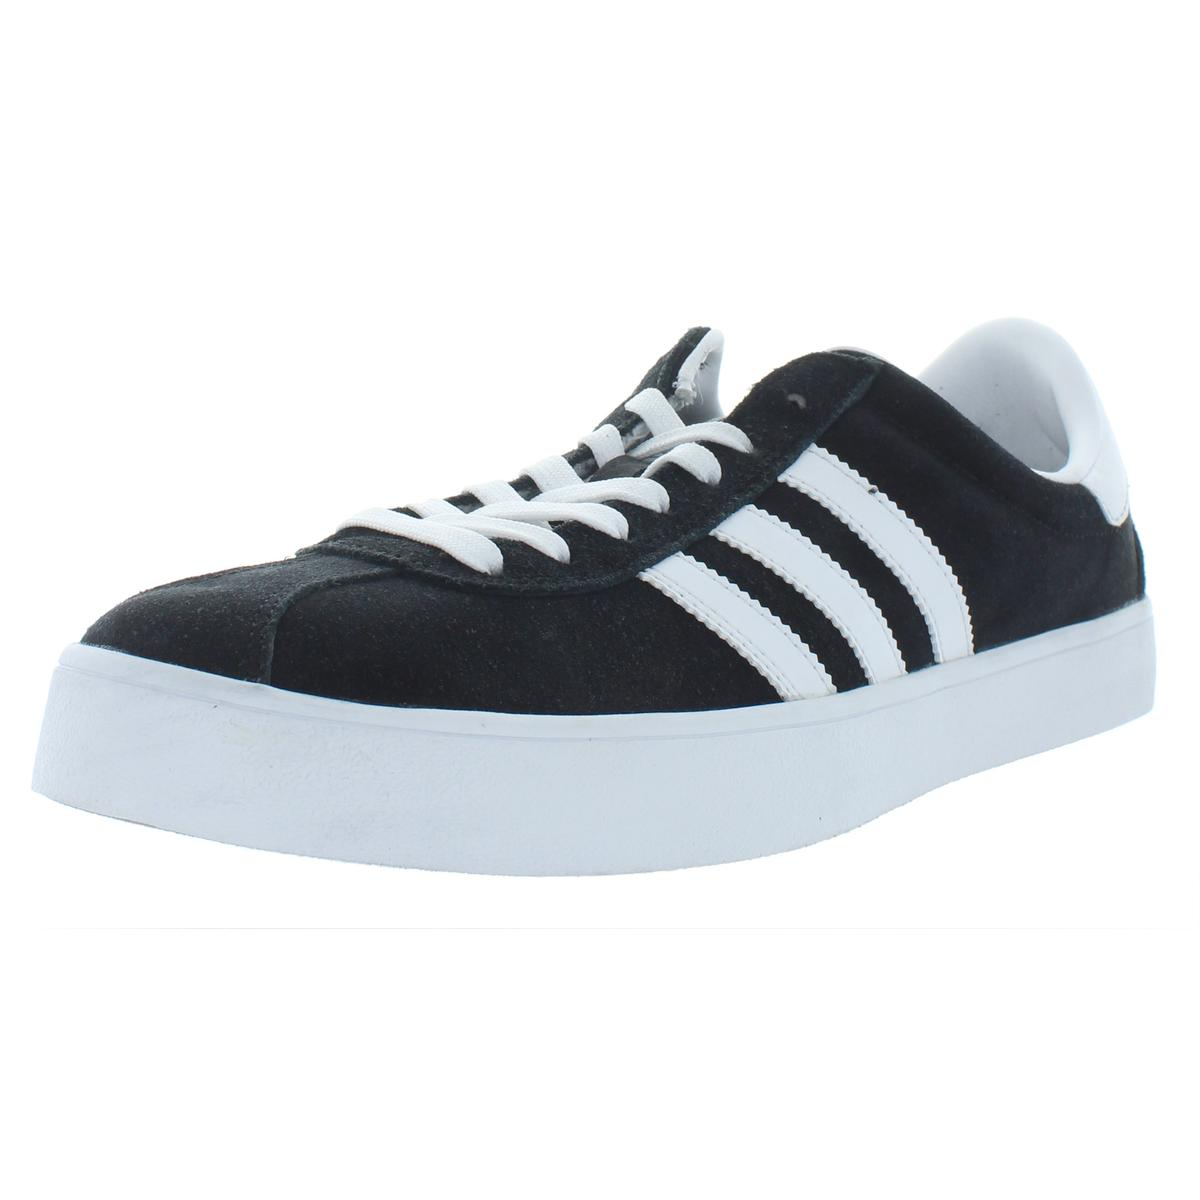 Bhfo Adv 5228 Low Suede Adidas Sneakers Originals Mens About Top Details Shoes Skate MqpzjSVGLU